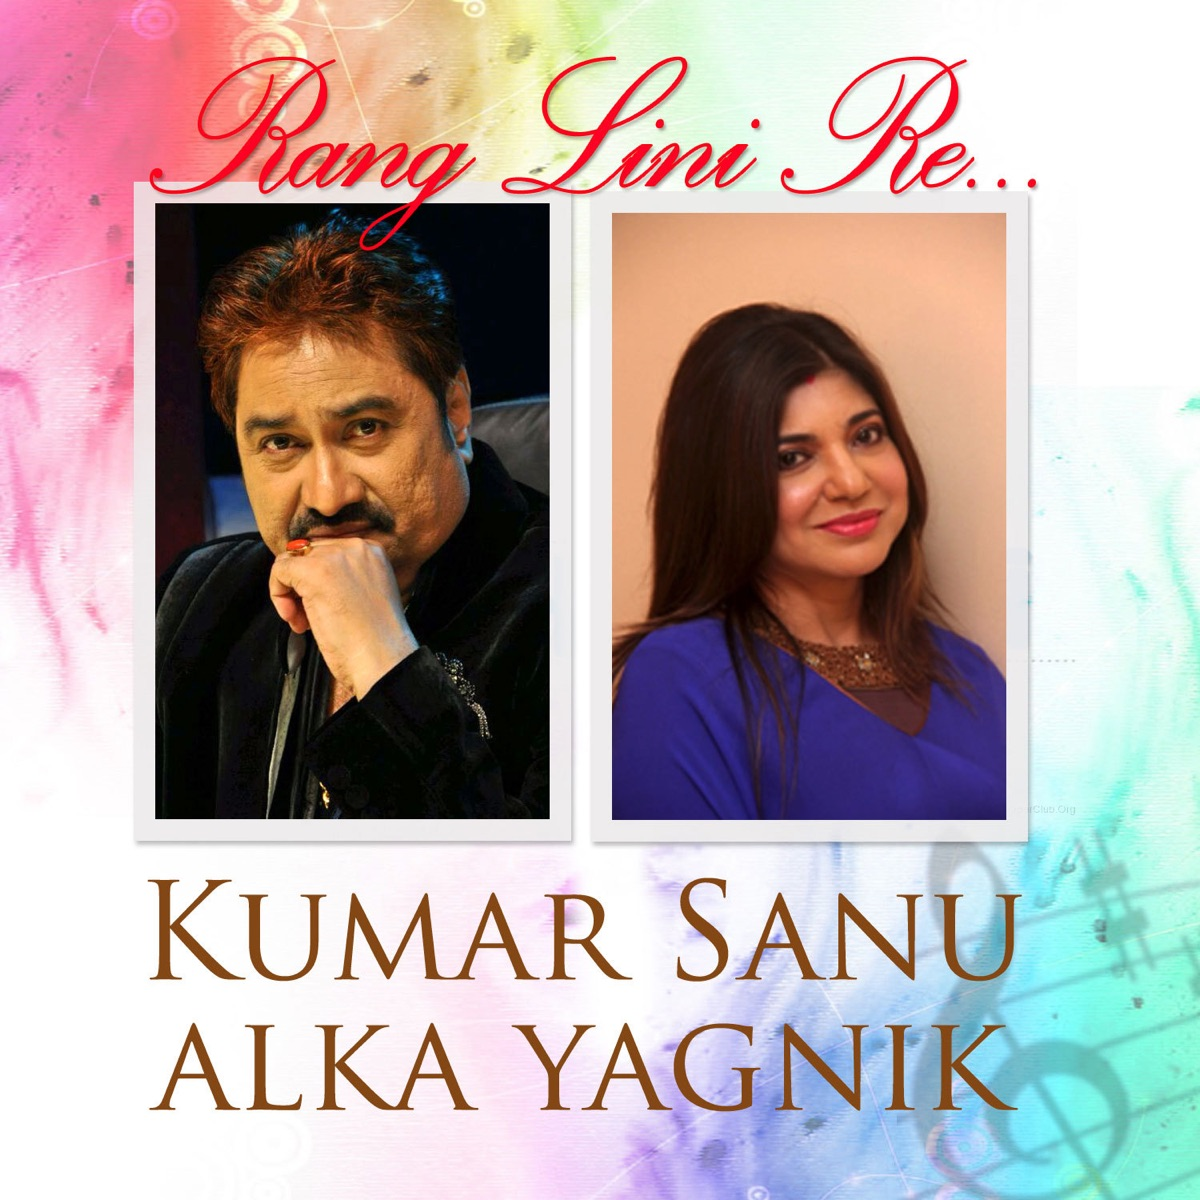 Rang Lini Re - Single Album Cover by Kumar Sanu & Alka Yagnik